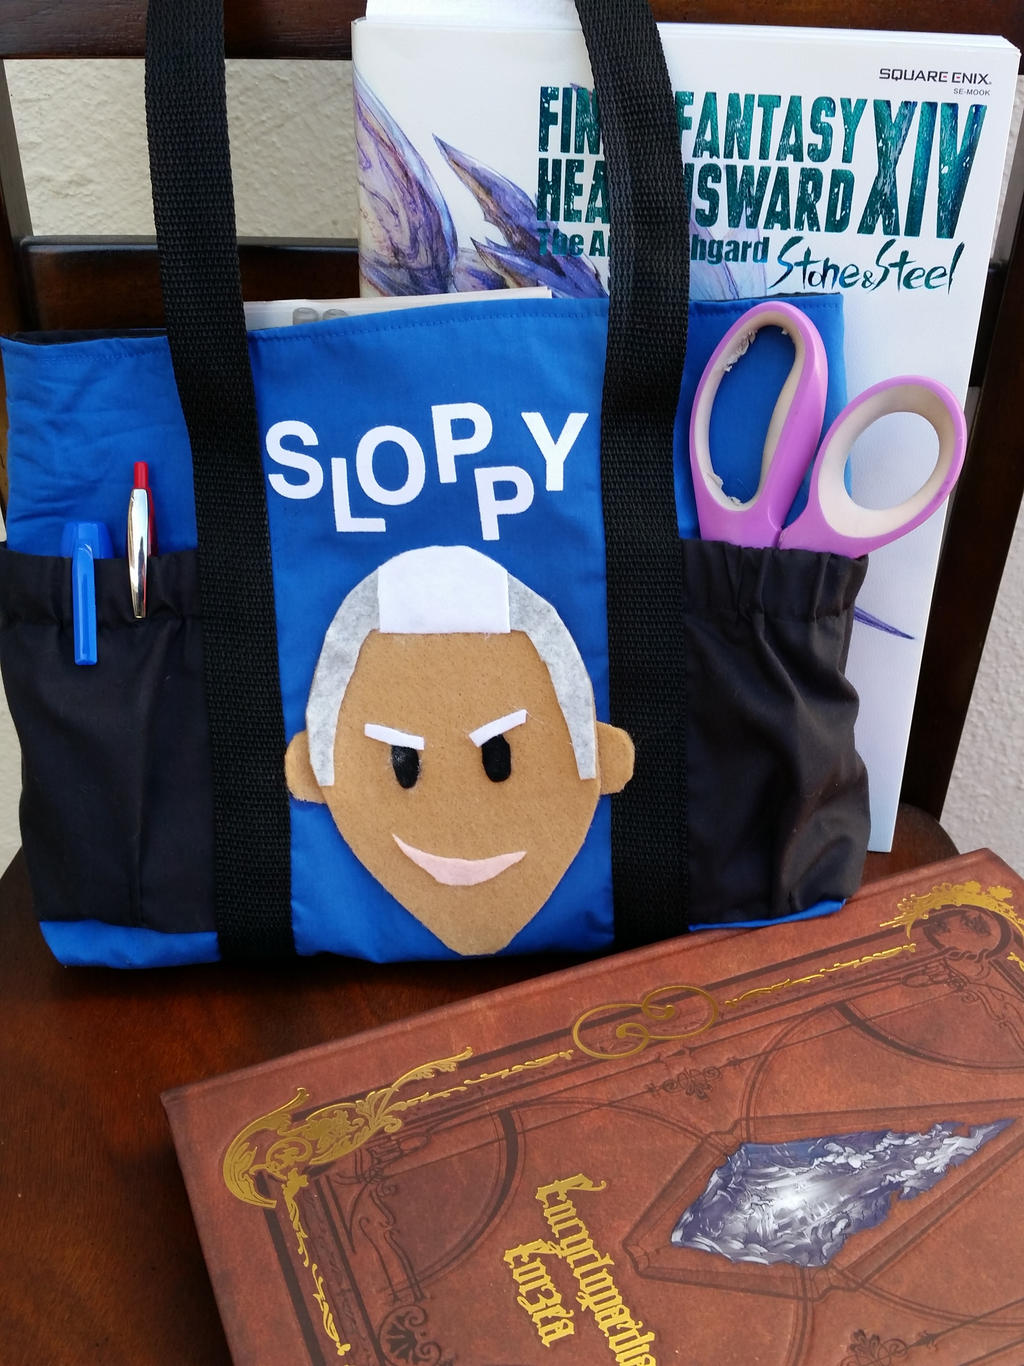 FFXIV: SLOPPY! tote bag by Leaf-nin on DeviantArt